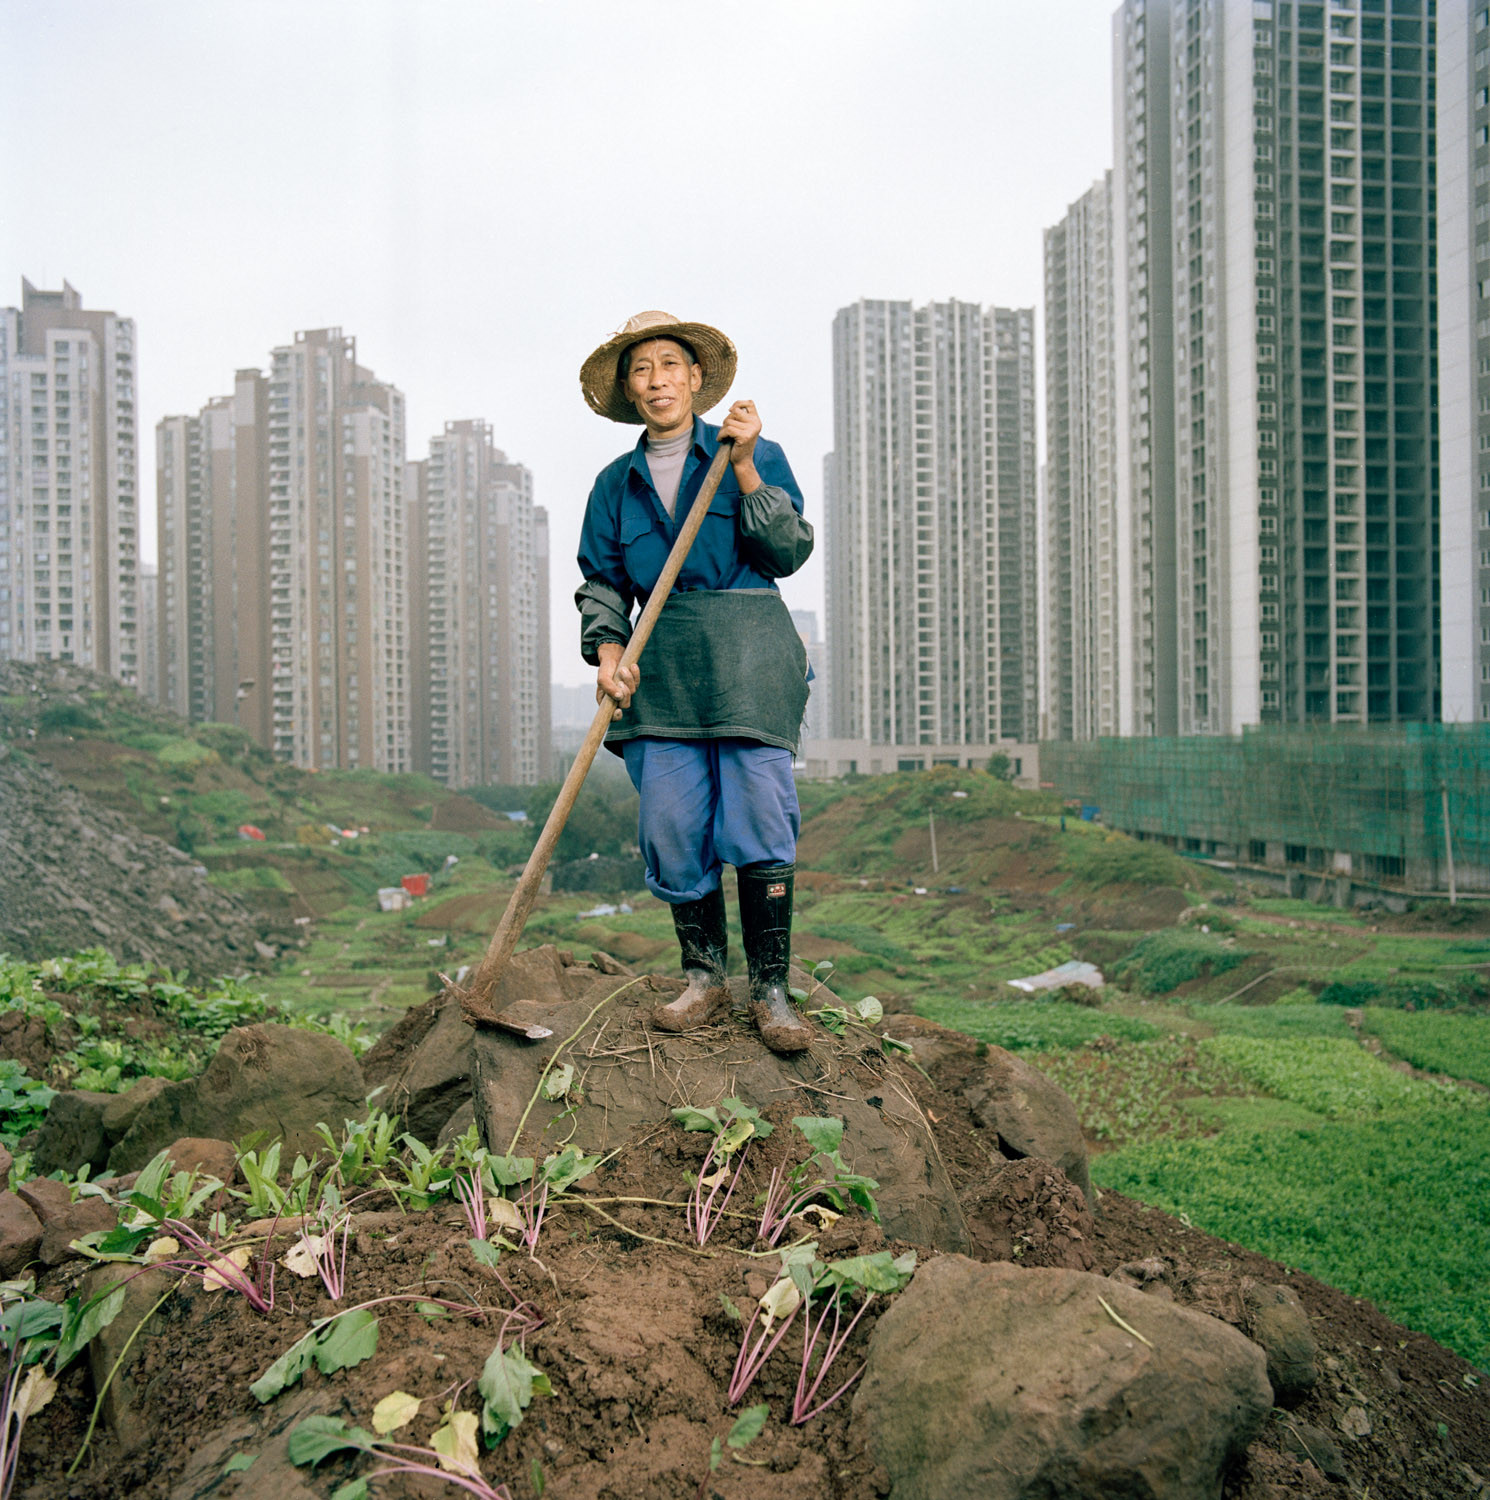 Tim Franco Captures the Overscaled Urbanization of Chongqing, © Tim Franco